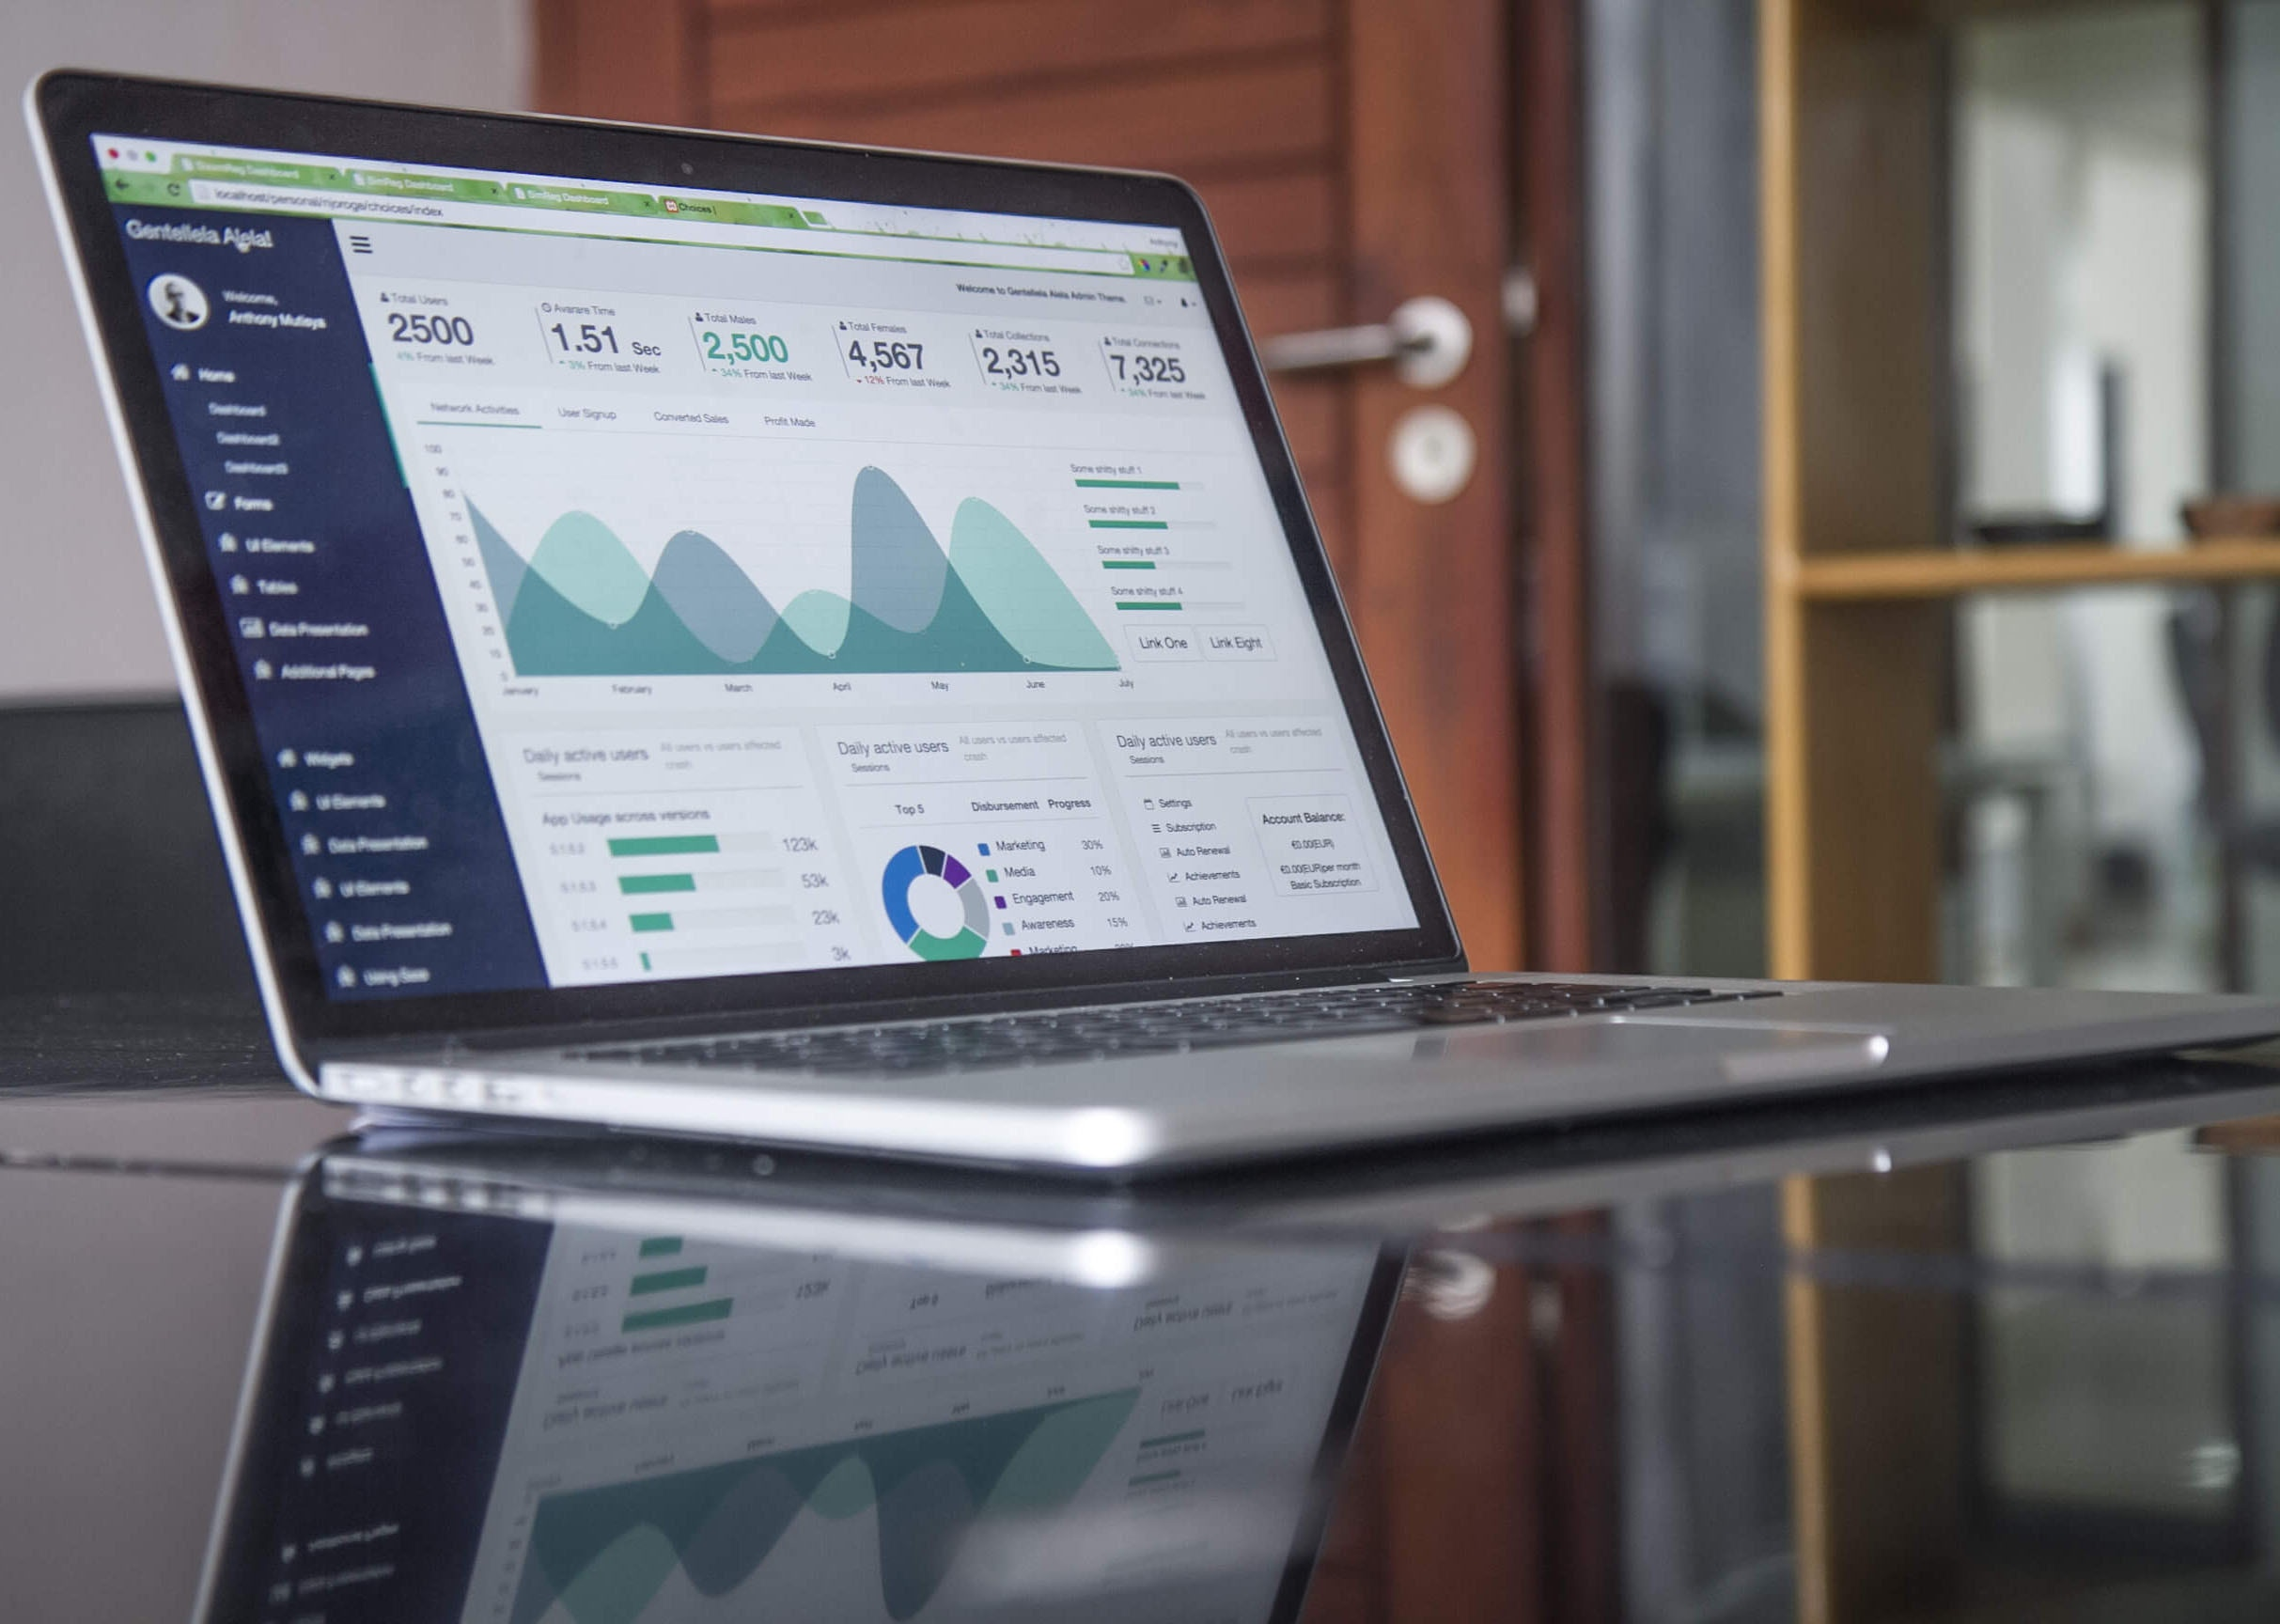 Conversion Funnels, Visual Analytics, 7 Ways Data is Transforming Finance, and more